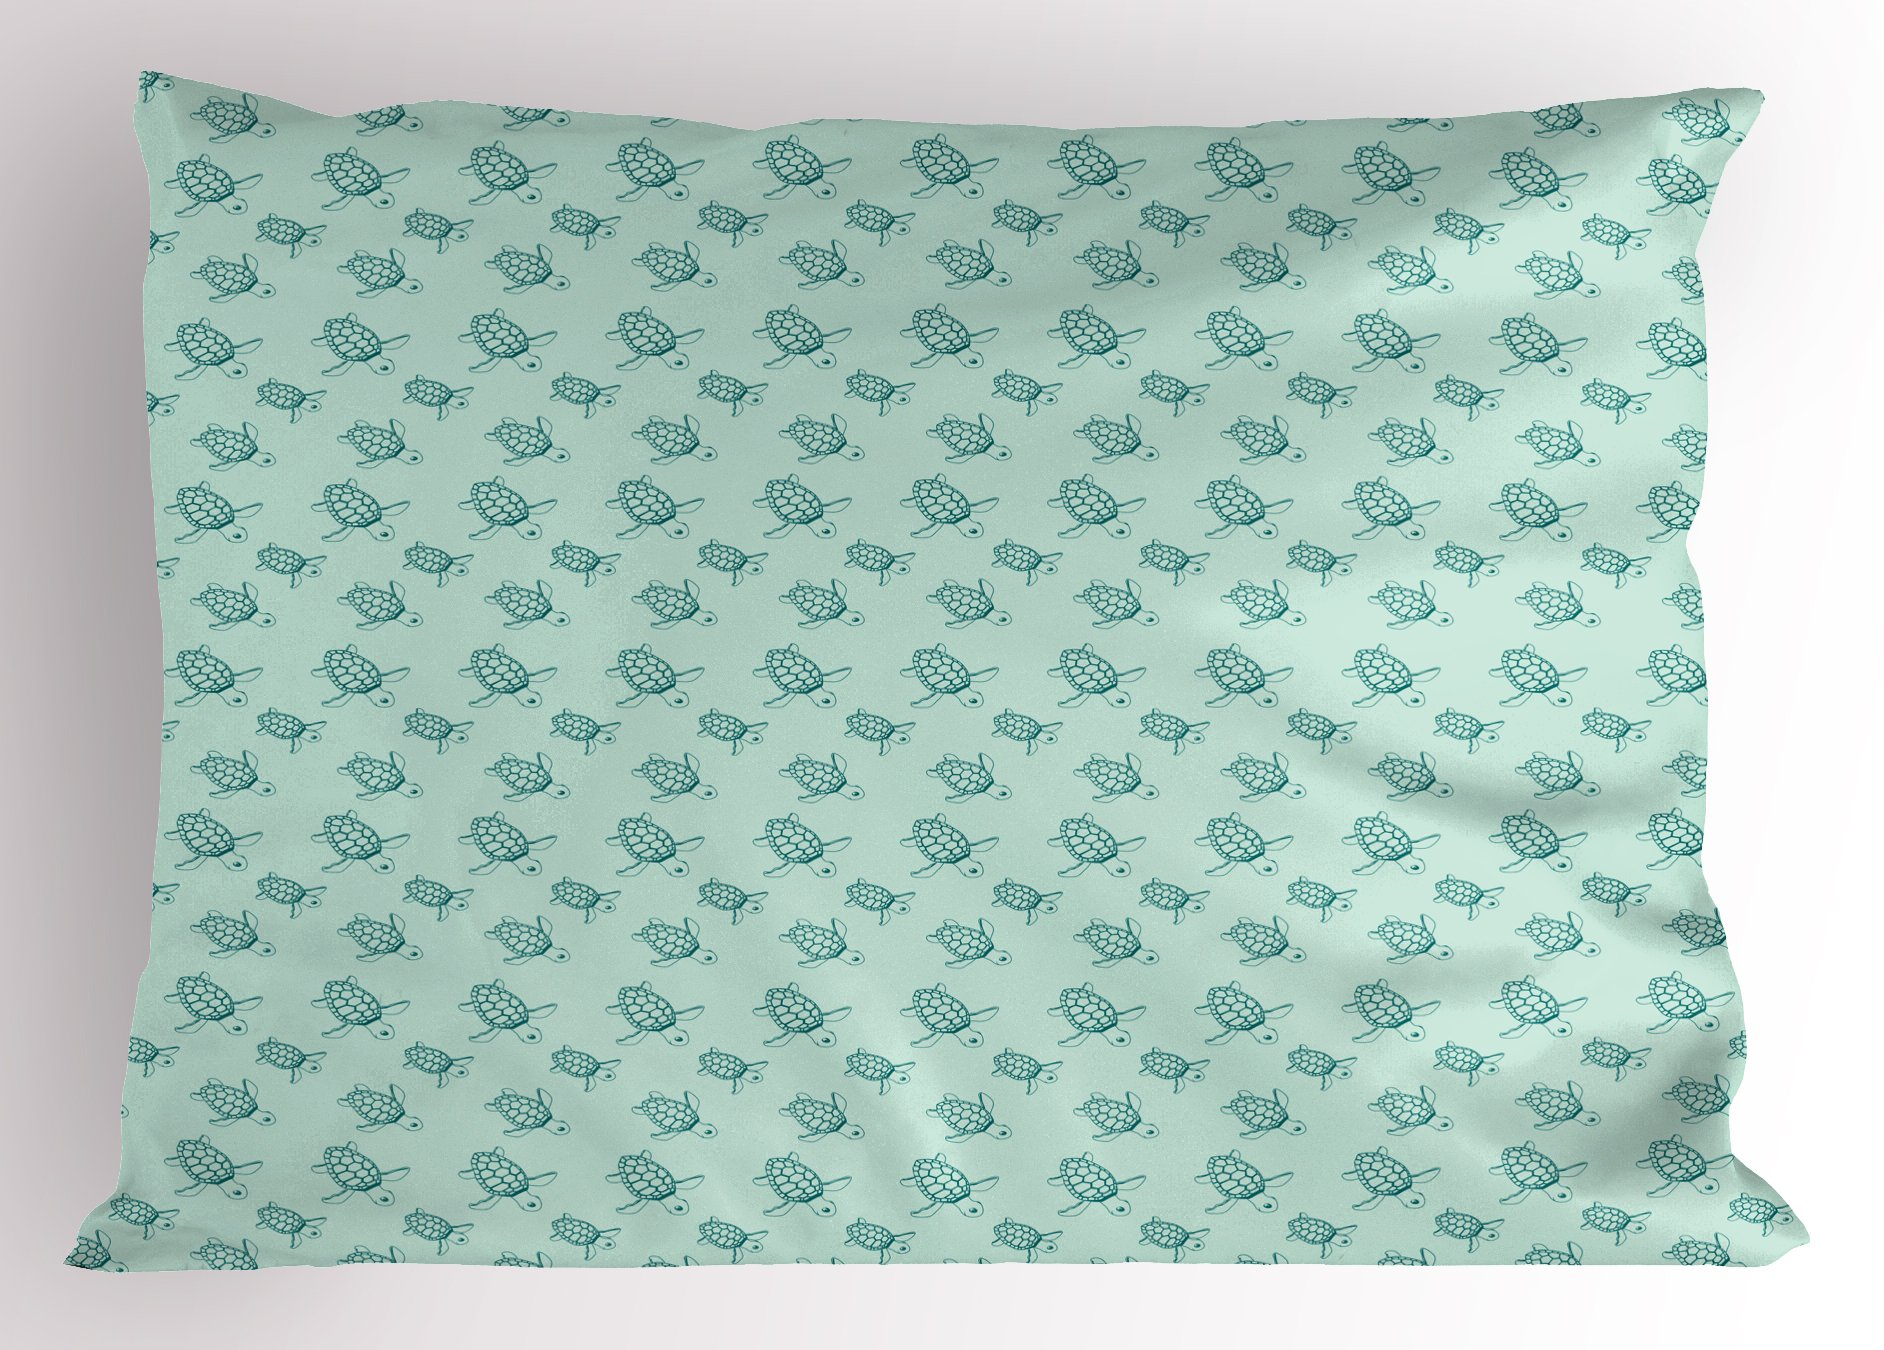 Lunarable Turtle Pillow Sham, Sea Pattern Underwater Wildlife Illustration Sketch Style Animal Composition, Decorative Standard Size Printed Pillowcase, 26 X 20 inches, Teal and Turquoise